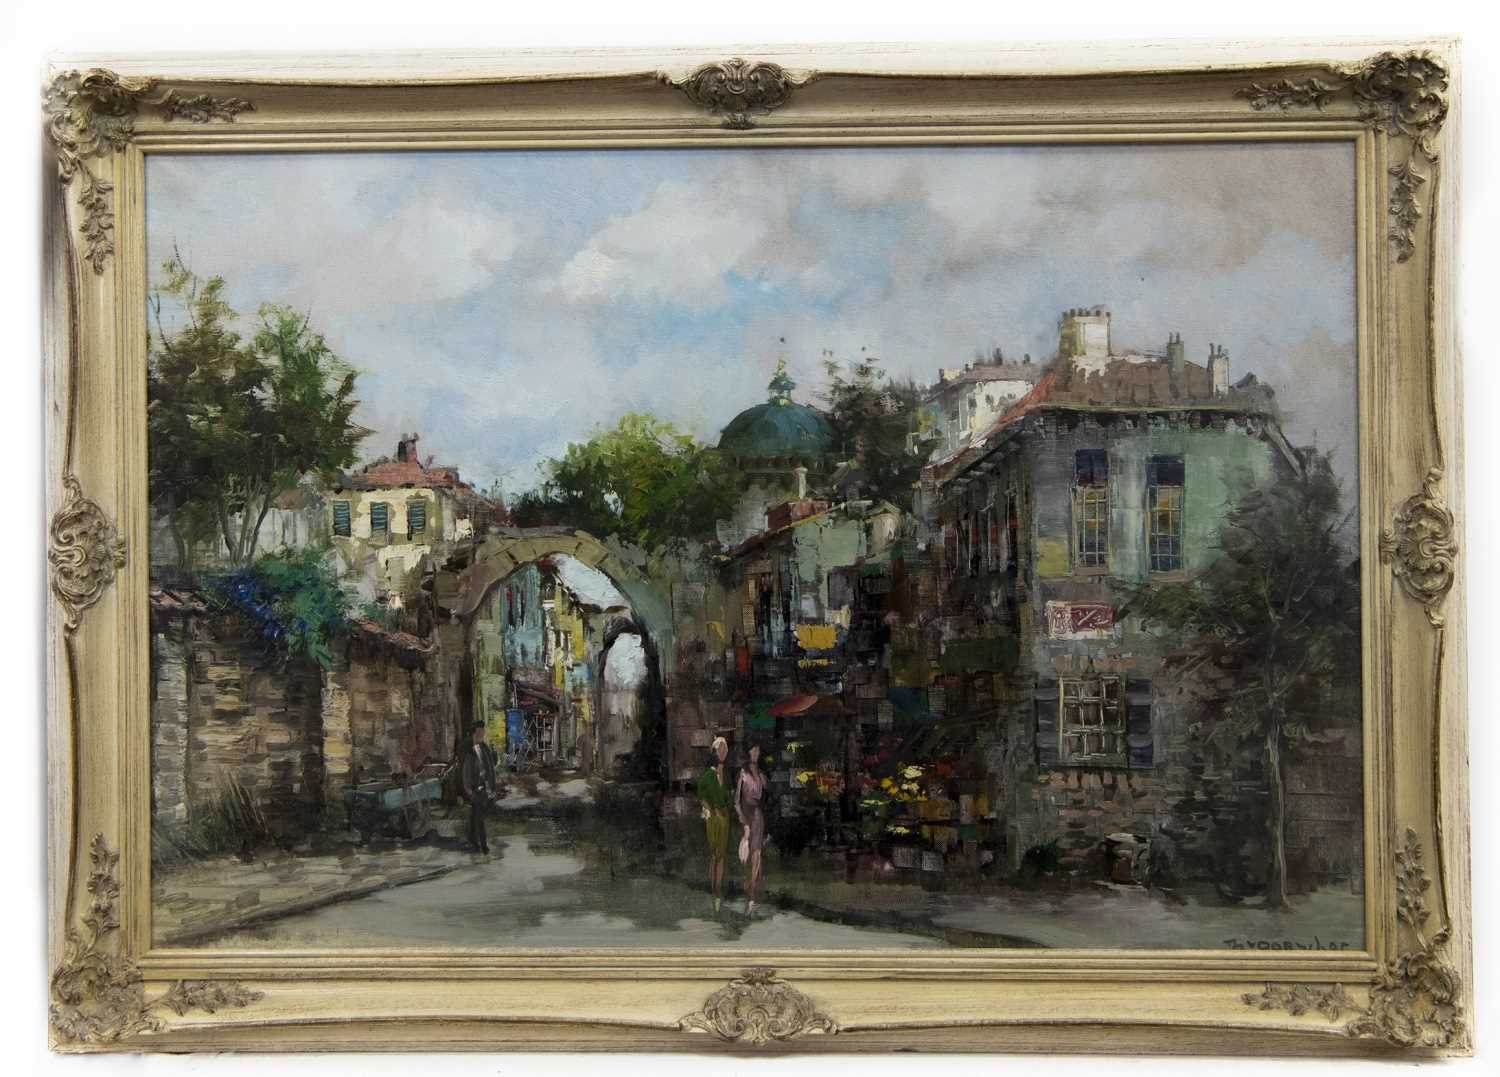 Lot 553 - THROUGH THE ARCHWAY, PARIS, AN OIL BY THEO VAN OORSCHOT